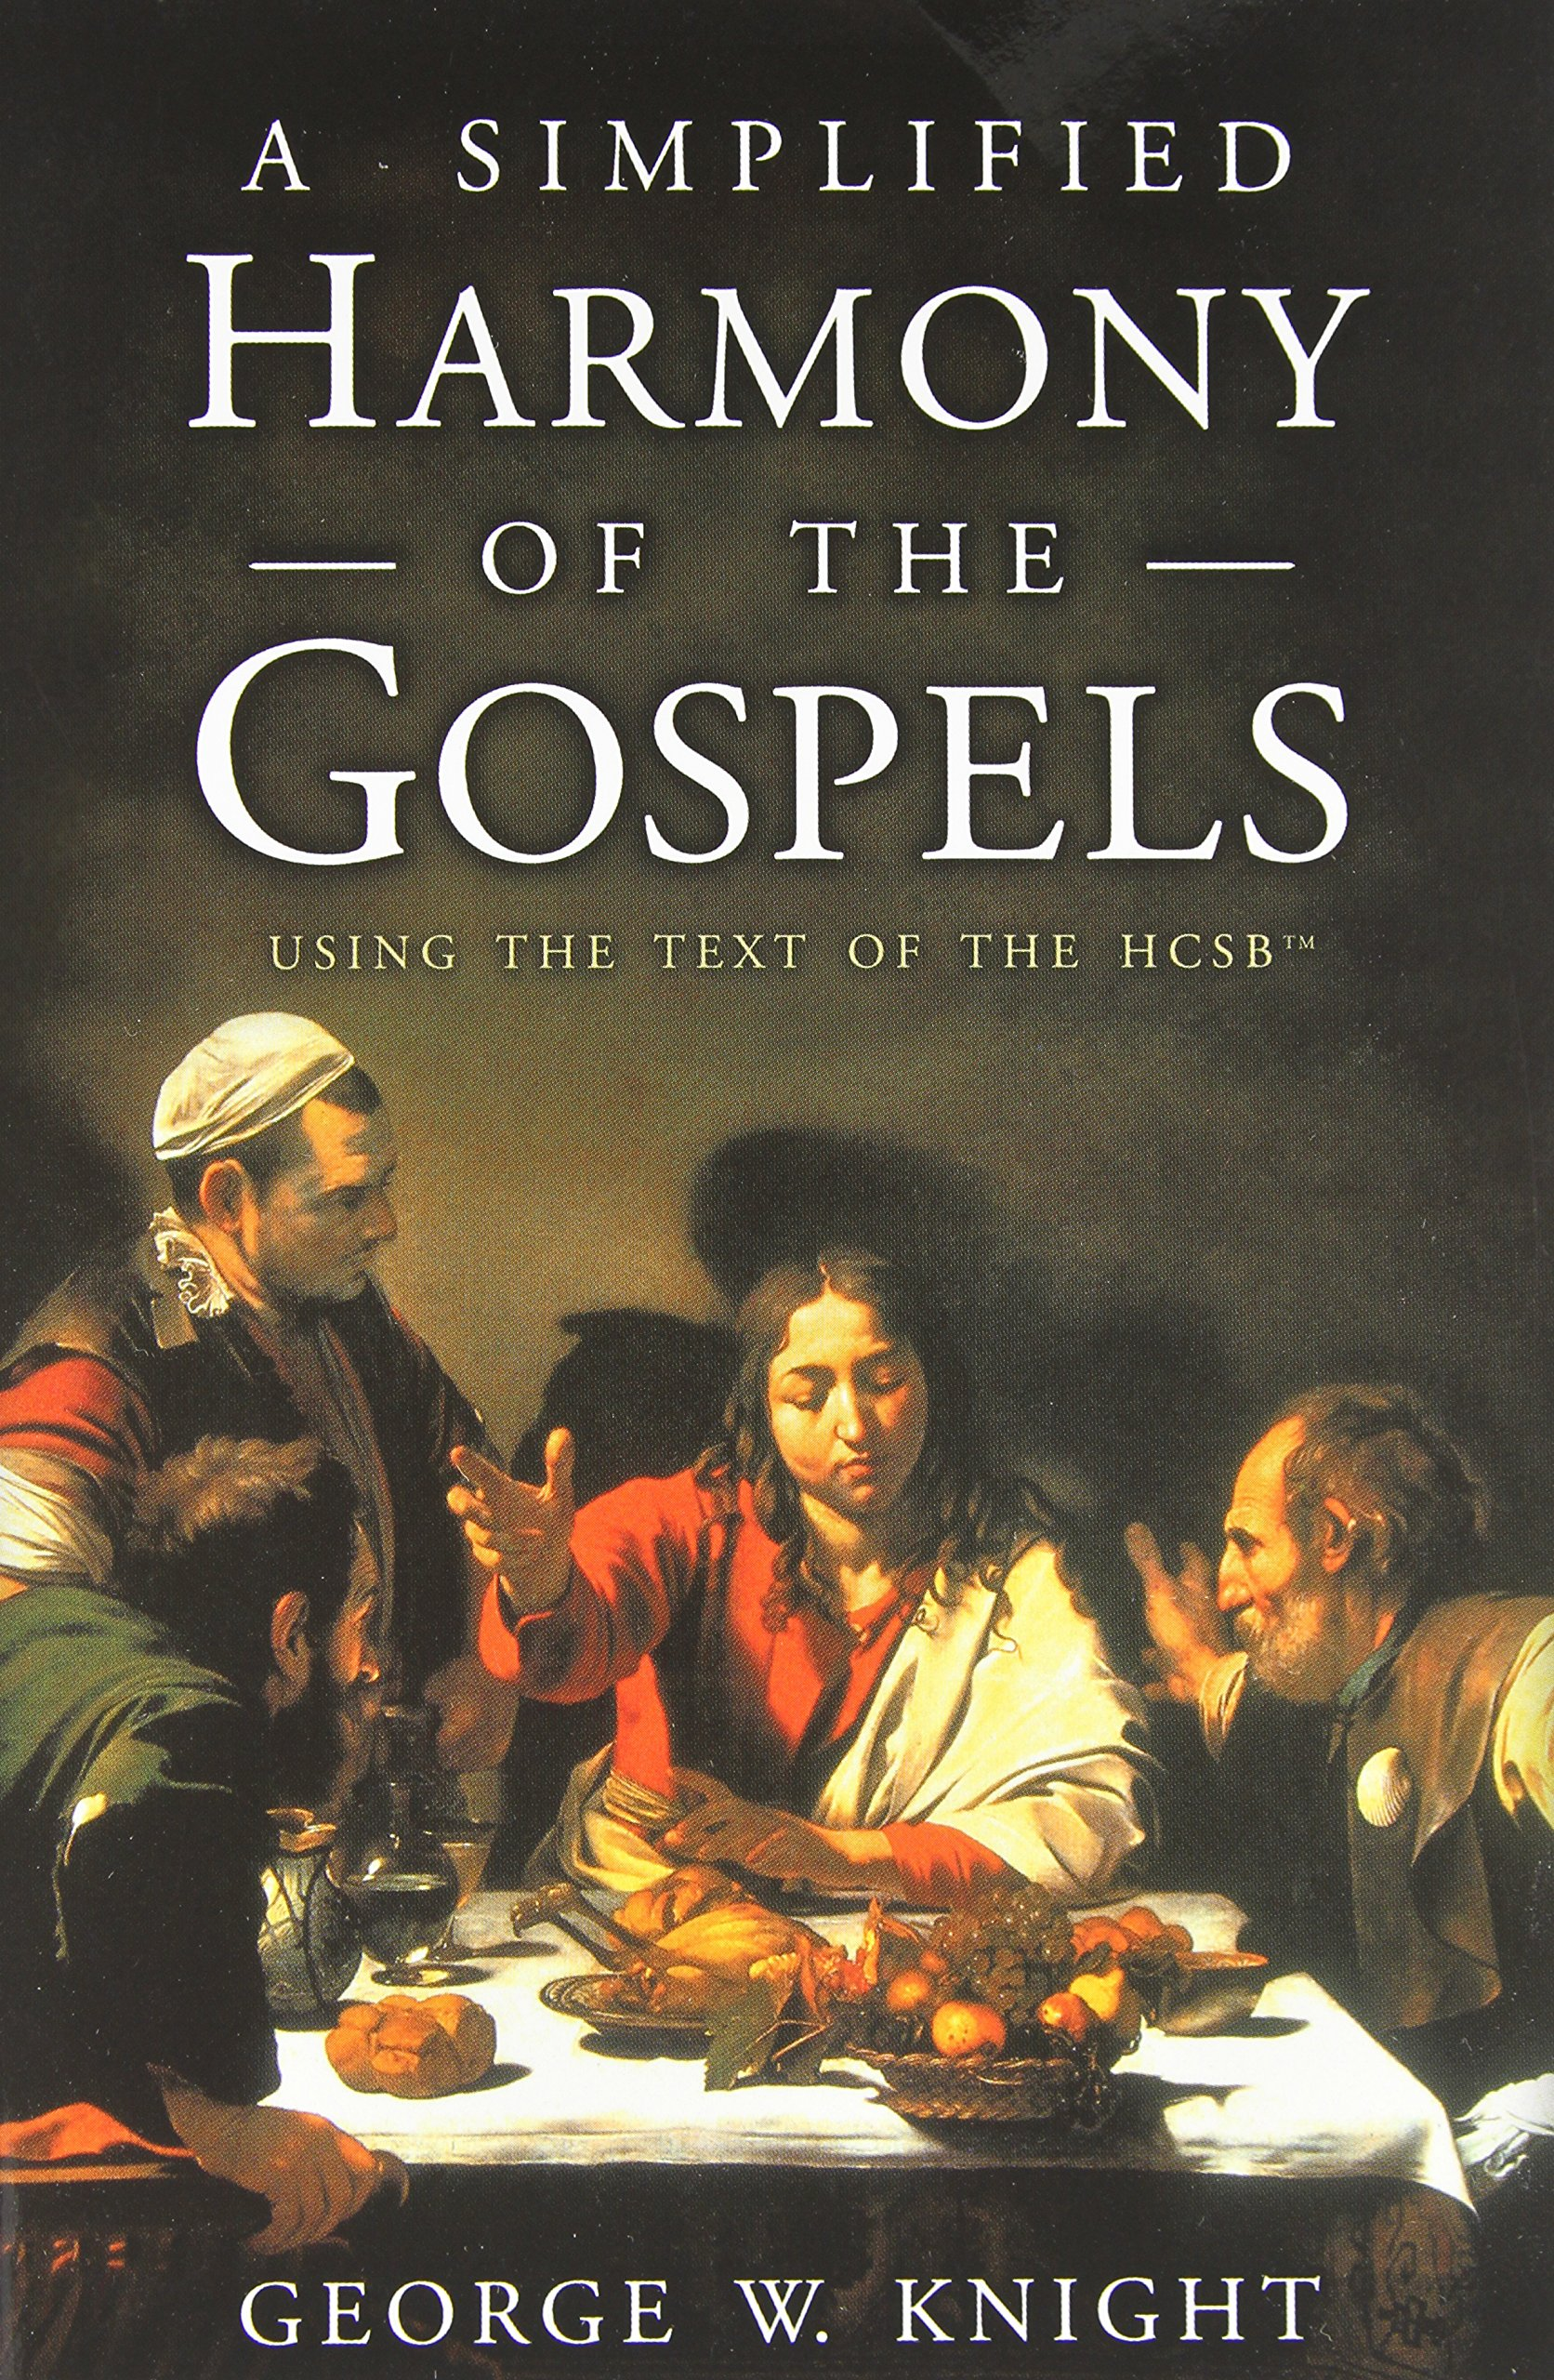 Download A Simplified Harmony of the Gospels: Using the Text of the HCSB ebook